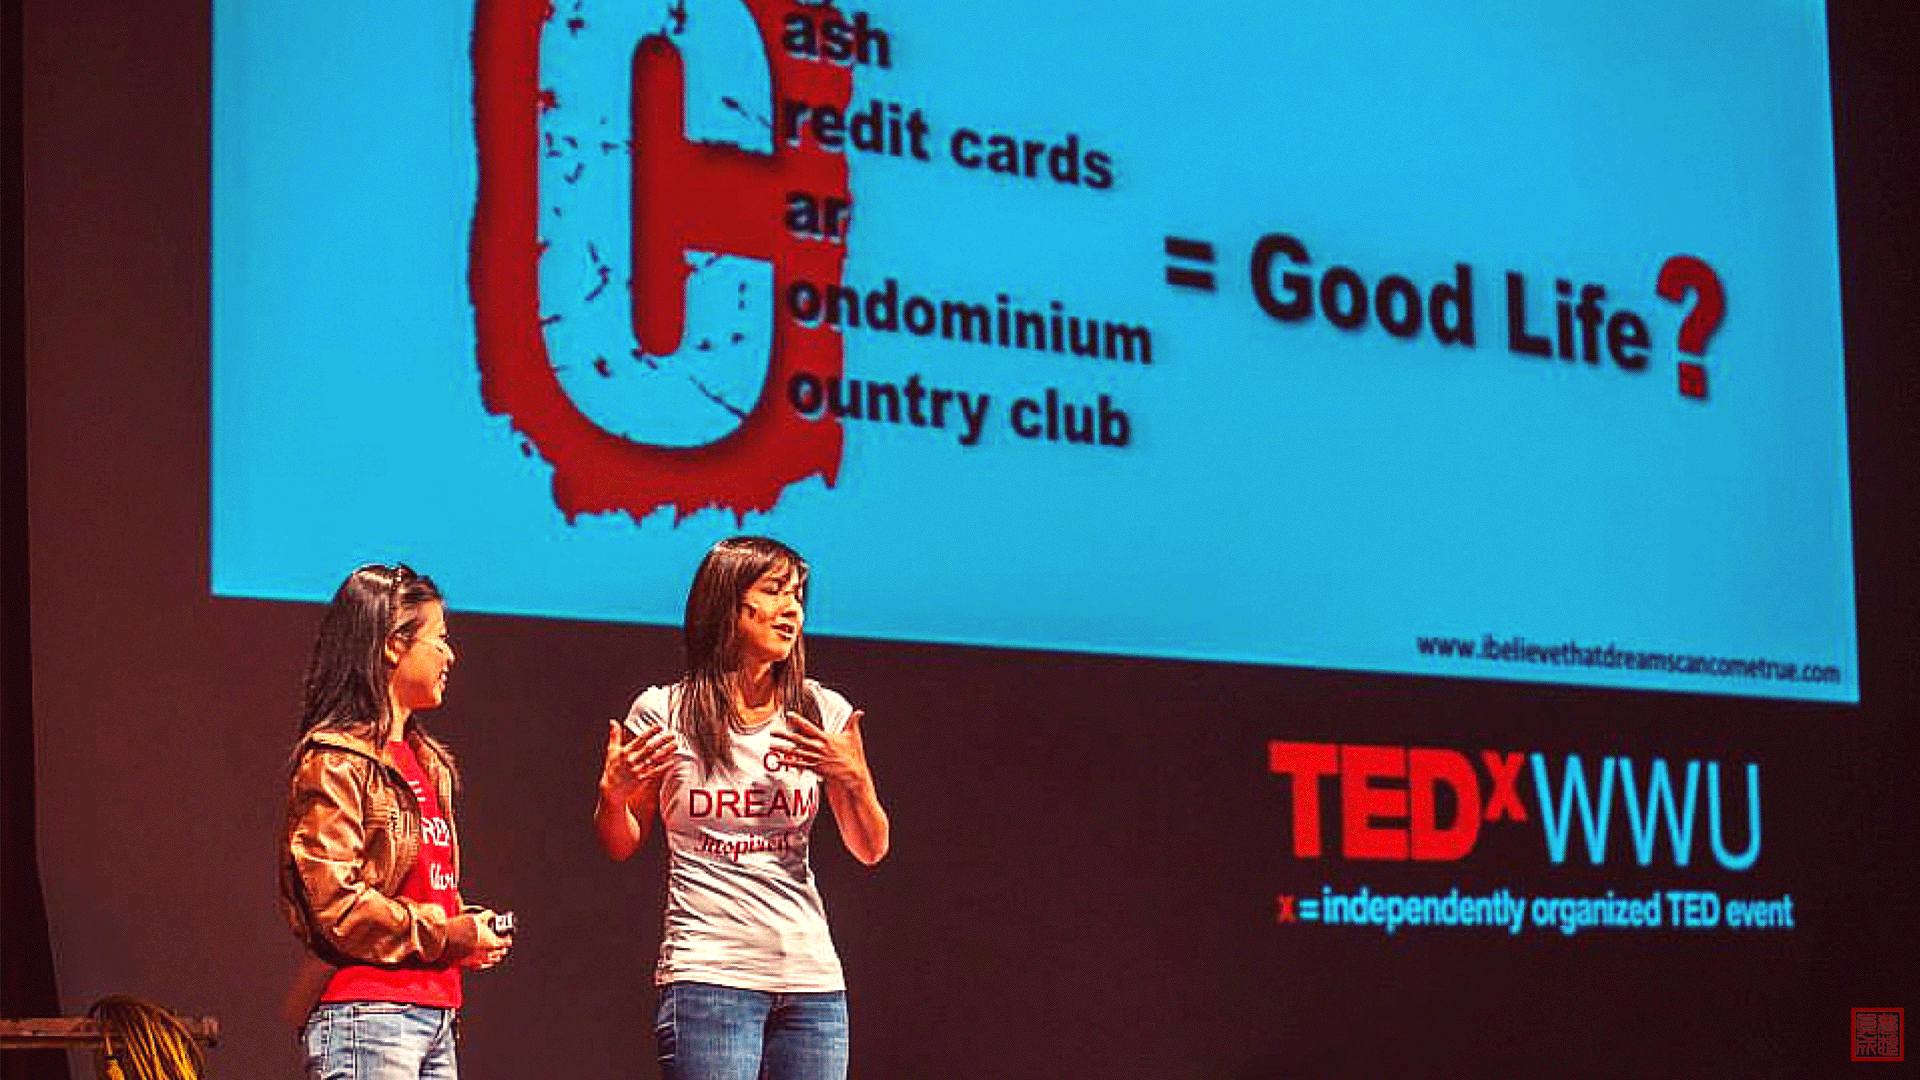 Our second TED Talk